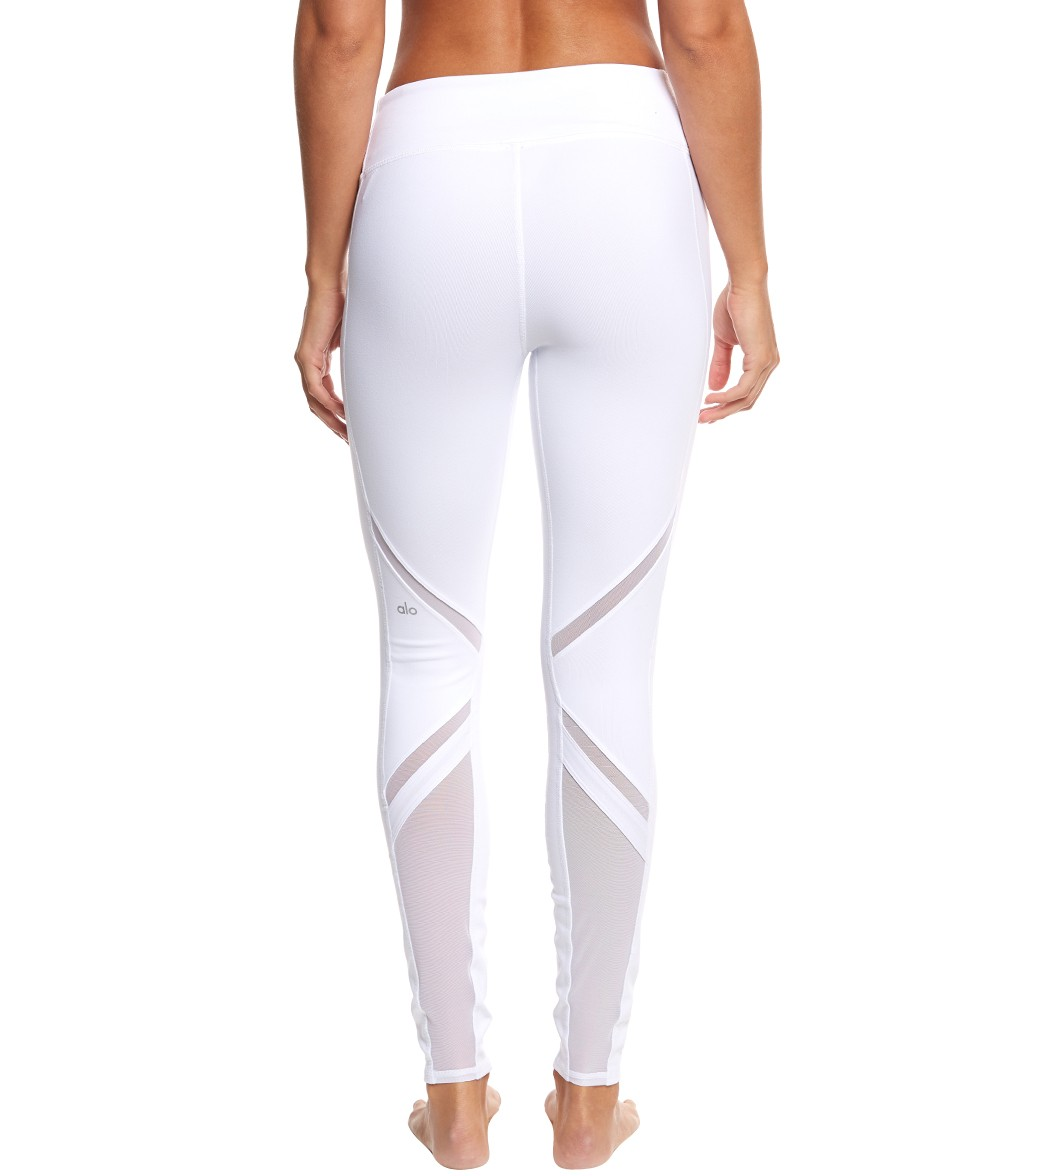 3cb8d991e23a5 Alo Yoga Epic Yoga Leggings at YogaOutlet.com - Free Shipping